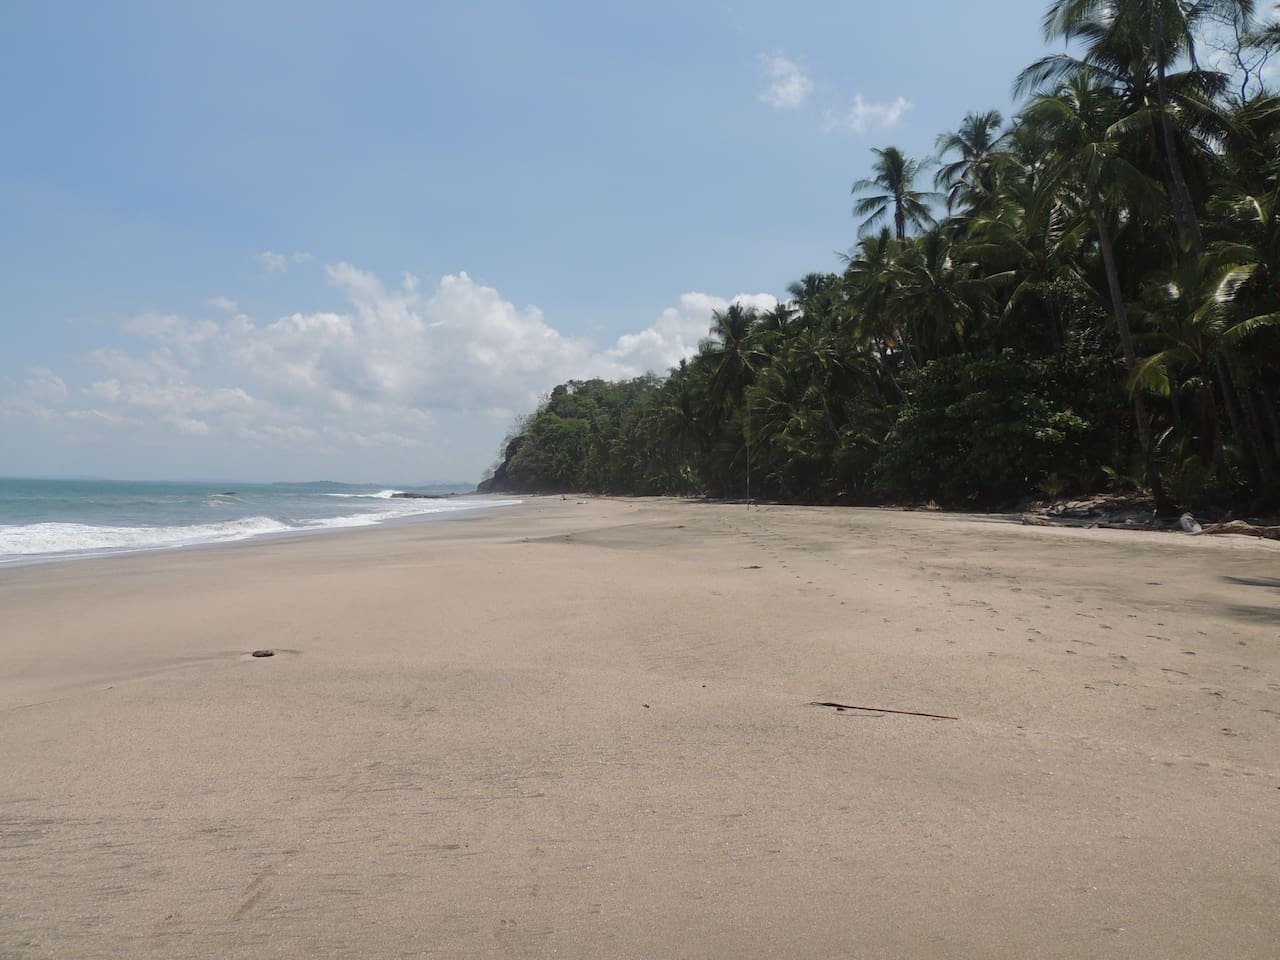 Very Private Beach with a large sand bar- excellent for swimming in the warm Pacific Ocean. Only 45 steps to the beach from the guesthouse.